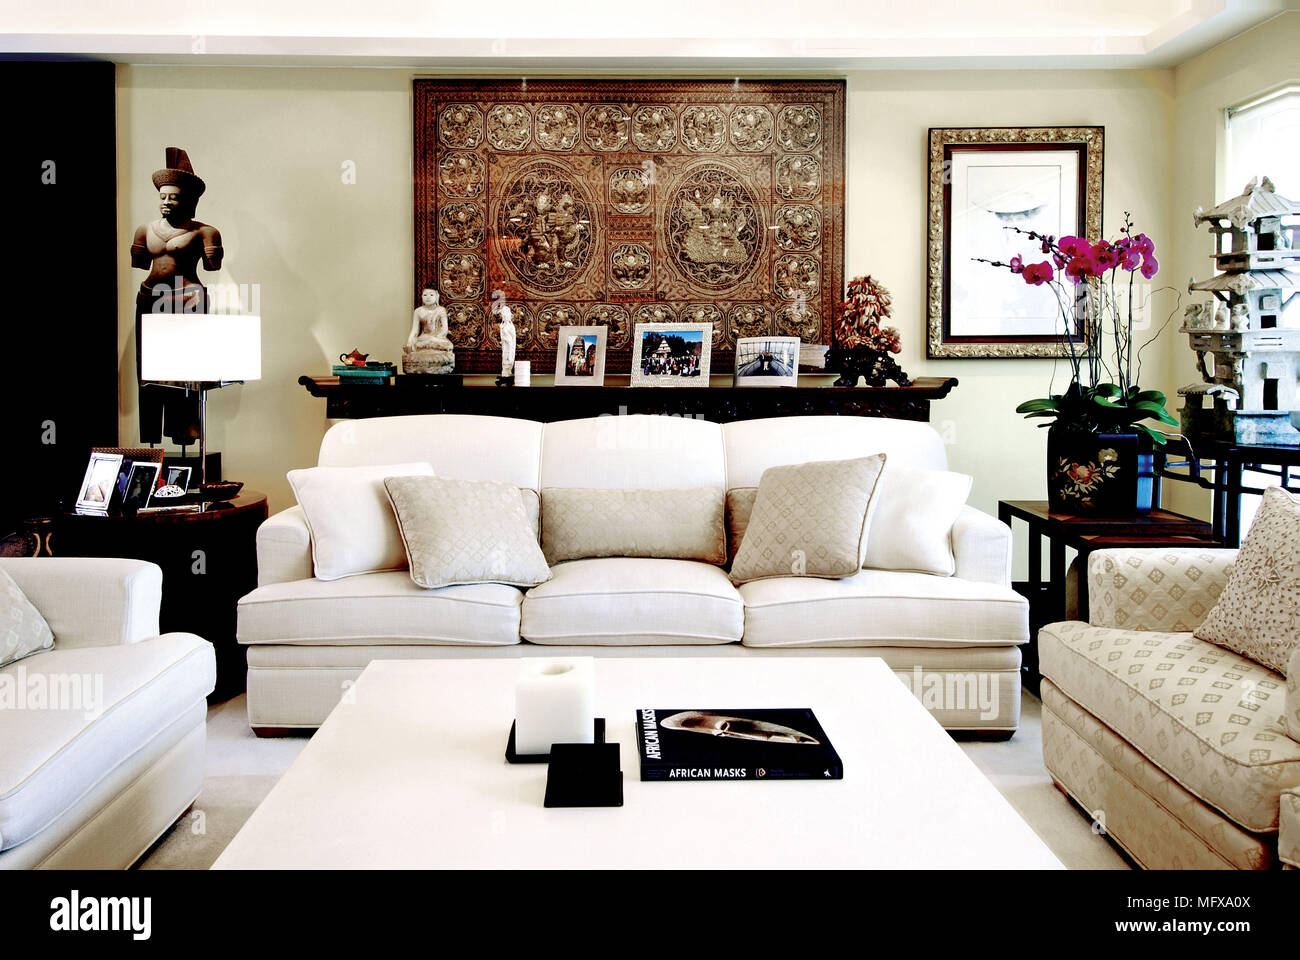 Upholstered Seating Around Coffee Table In Ethnic Style Sitting Room